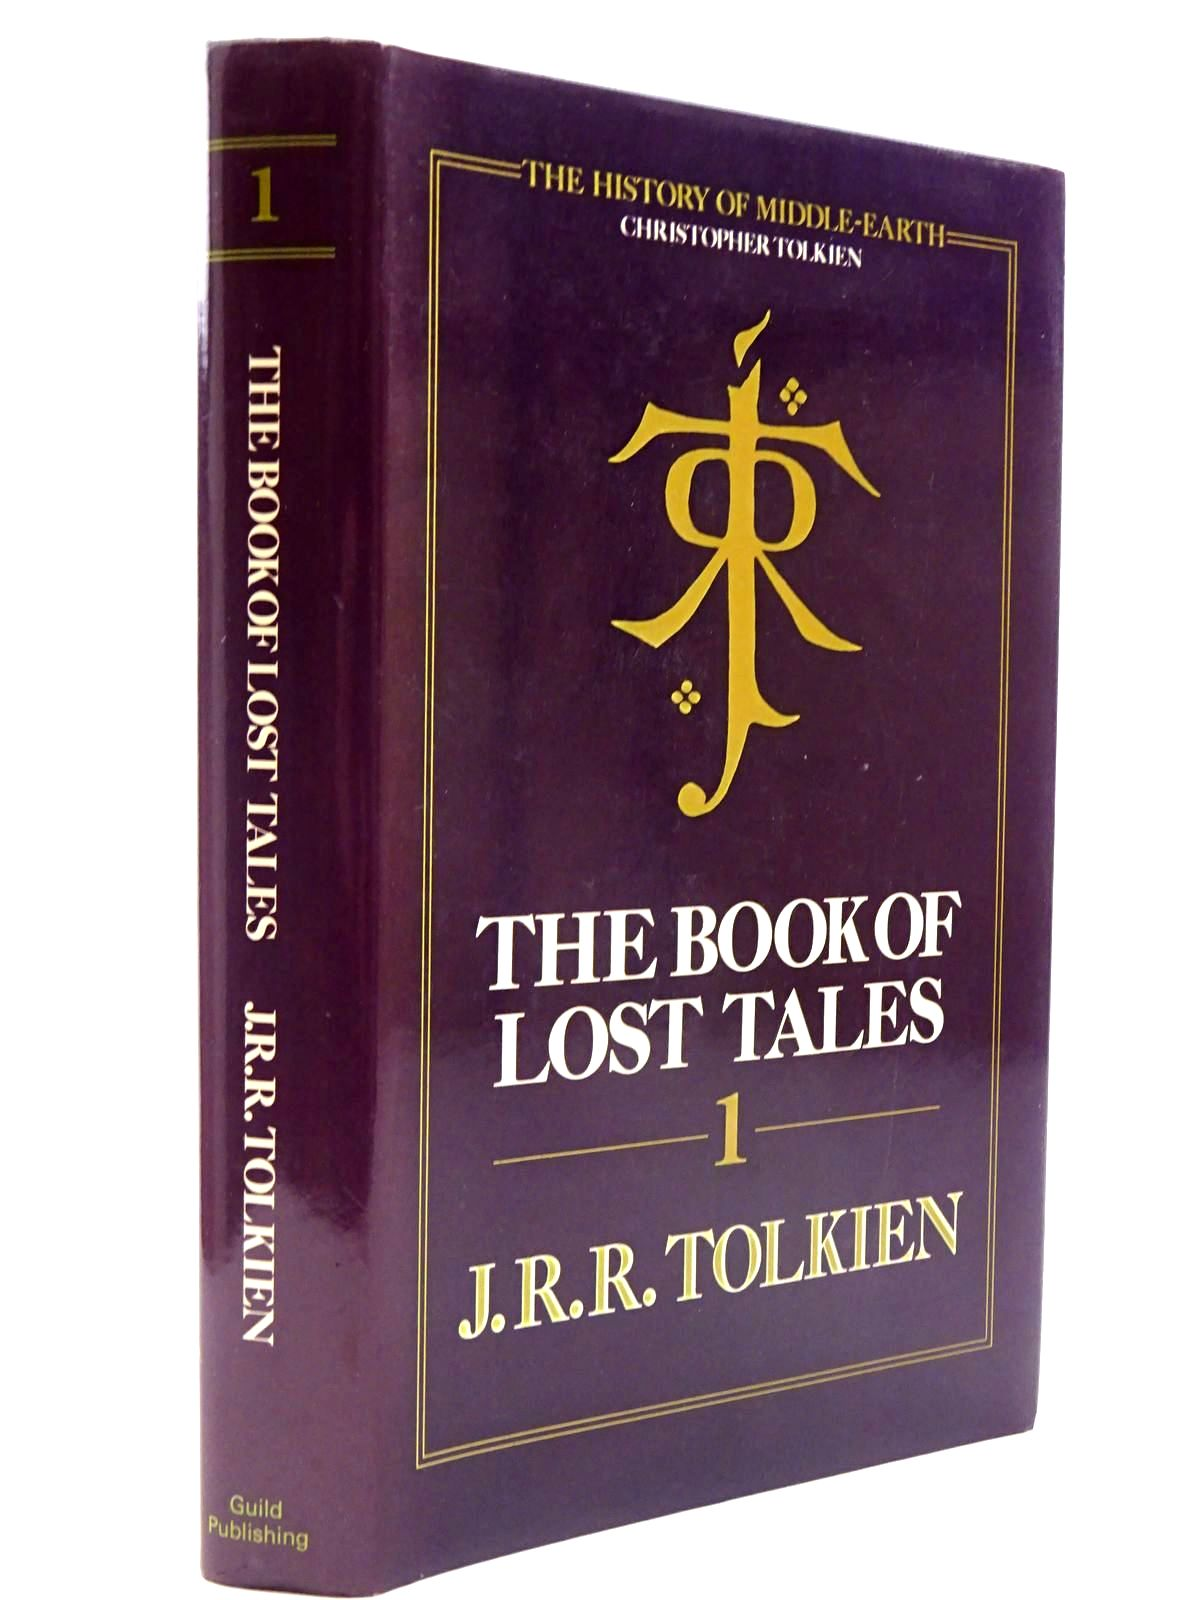 Photo of THE BOOK OF LOST TALES PART 1 written by Tolkien, J.R.R. published by Guild Publishing (STOCK CODE: 2130511)  for sale by Stella & Rose's Books